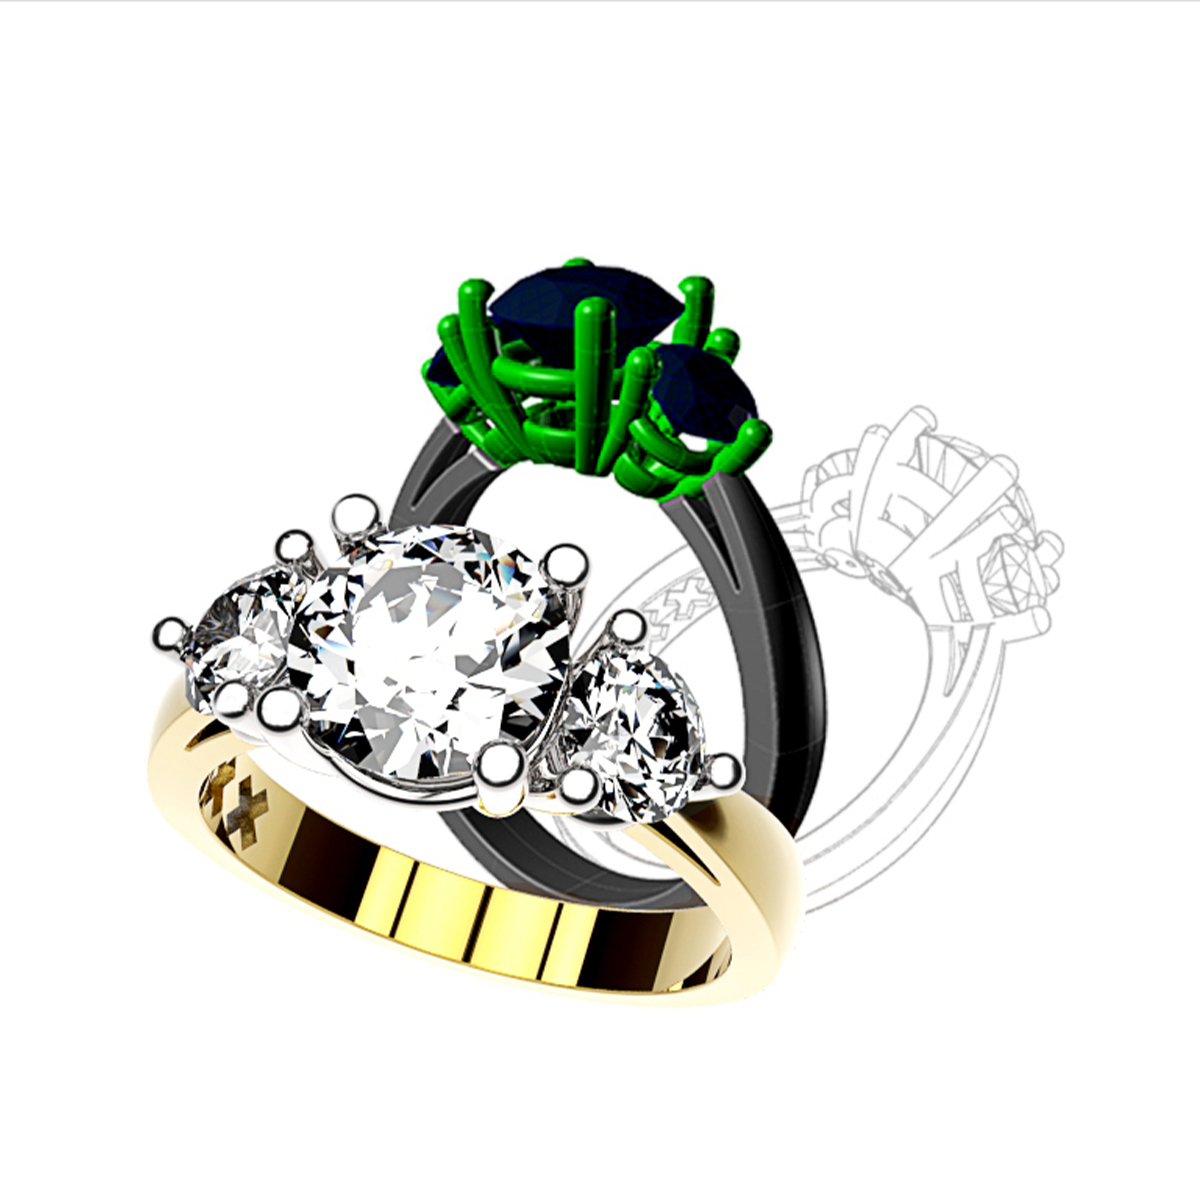 https://milldiamonds.com/wp-content/uploads/2020/05/1200x1200px-3steensRing.jpg